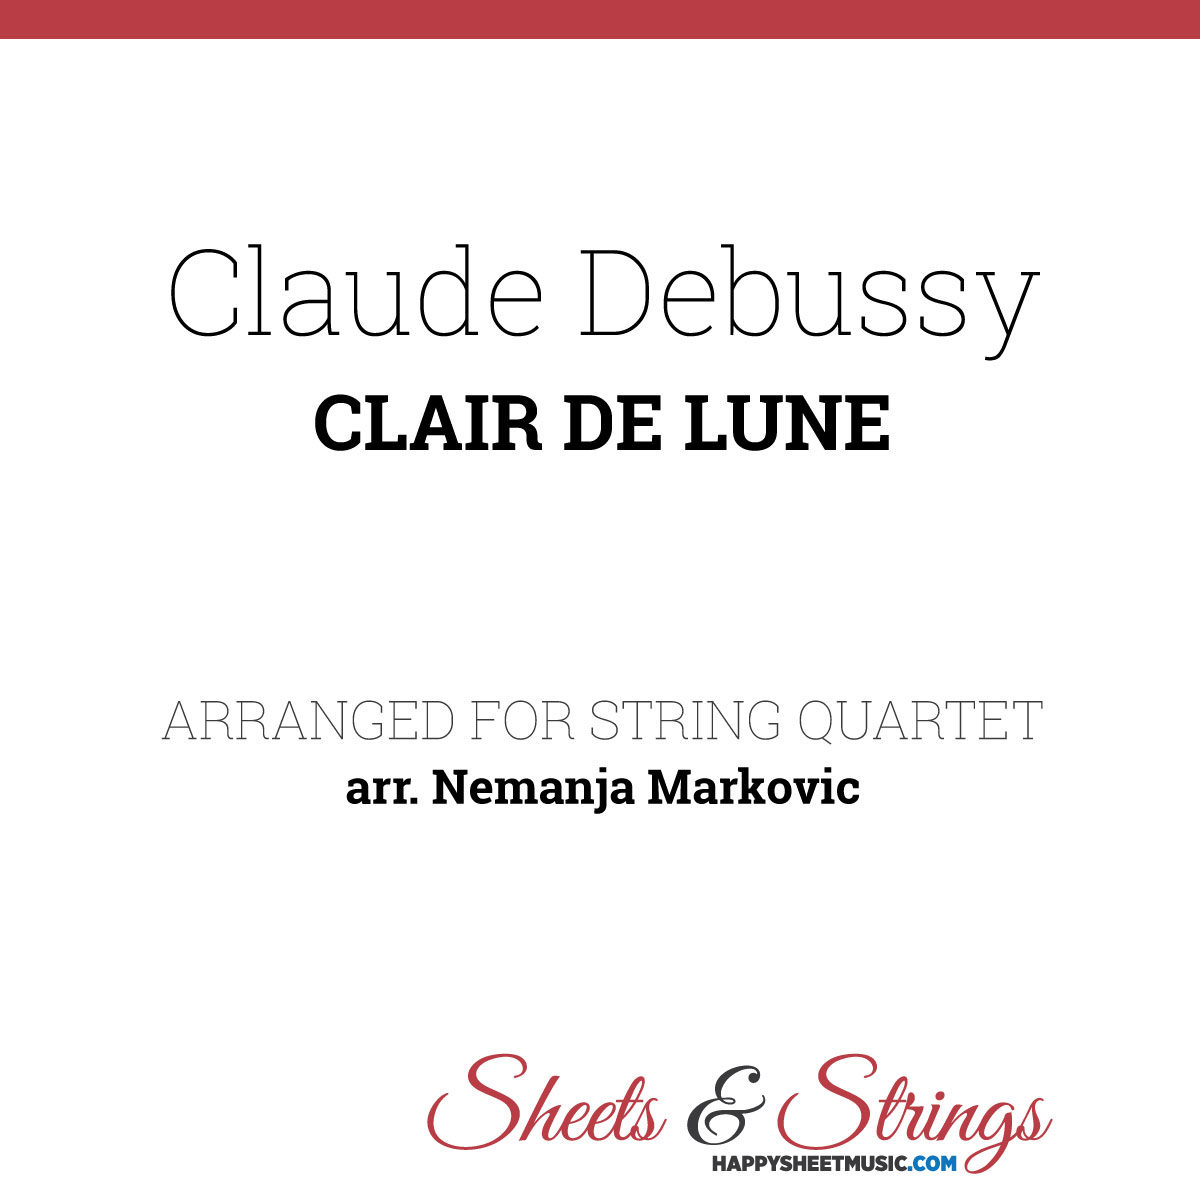 Claude Debussy - Clair De Lune - Sheet Music for String Quartet - Music Arrangement for String Quartet